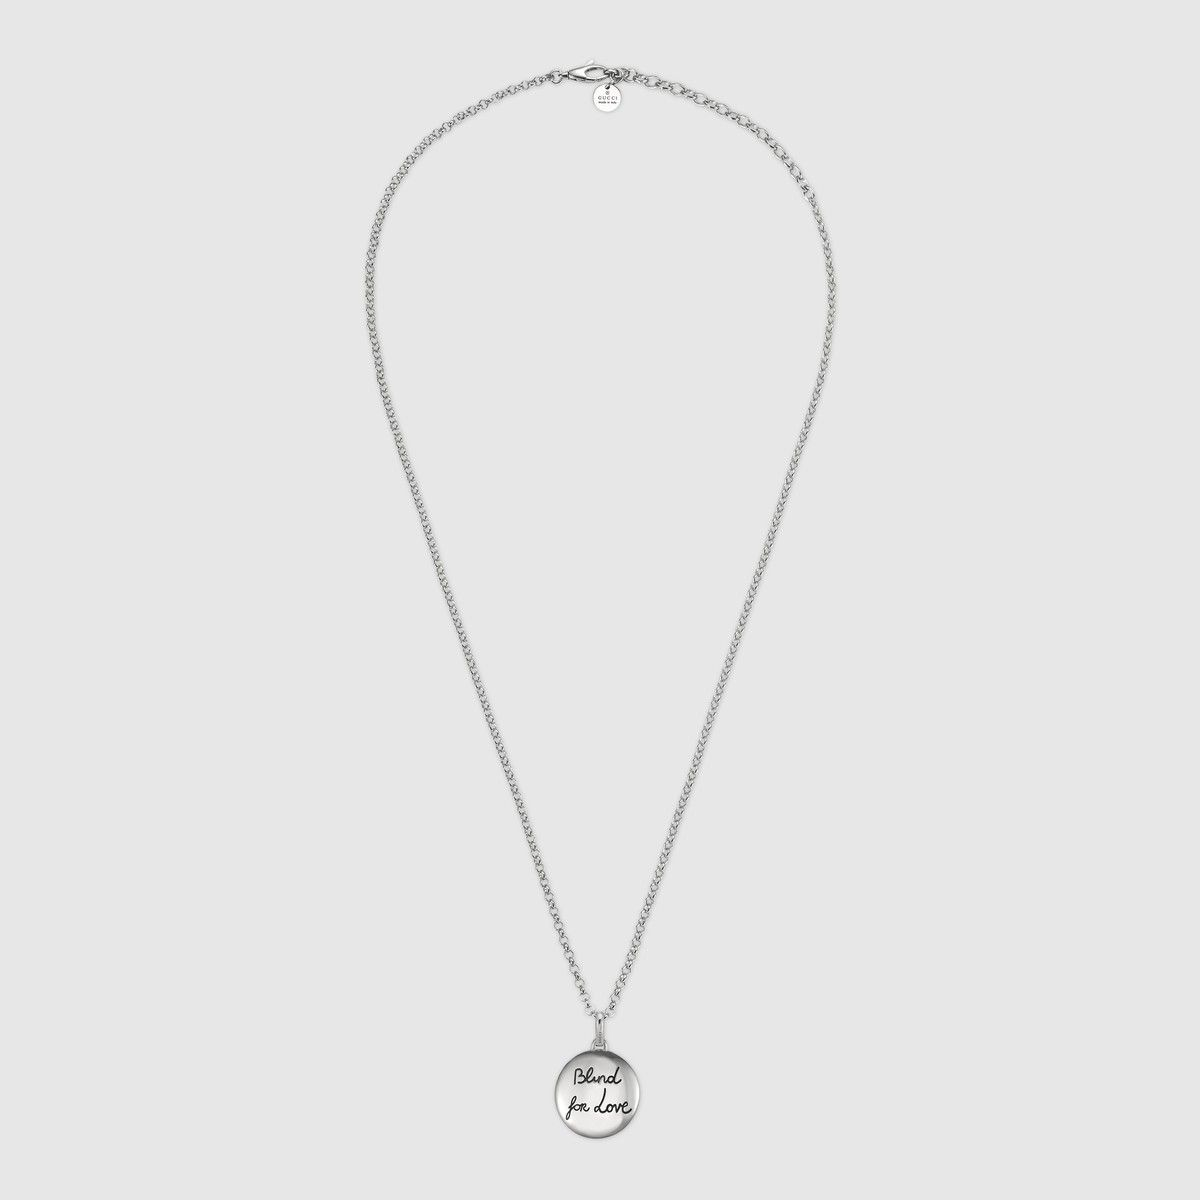 95f24f8896a GUCCI Blind For Love Necklace In Silver - Sterling Silver. #gucci #all